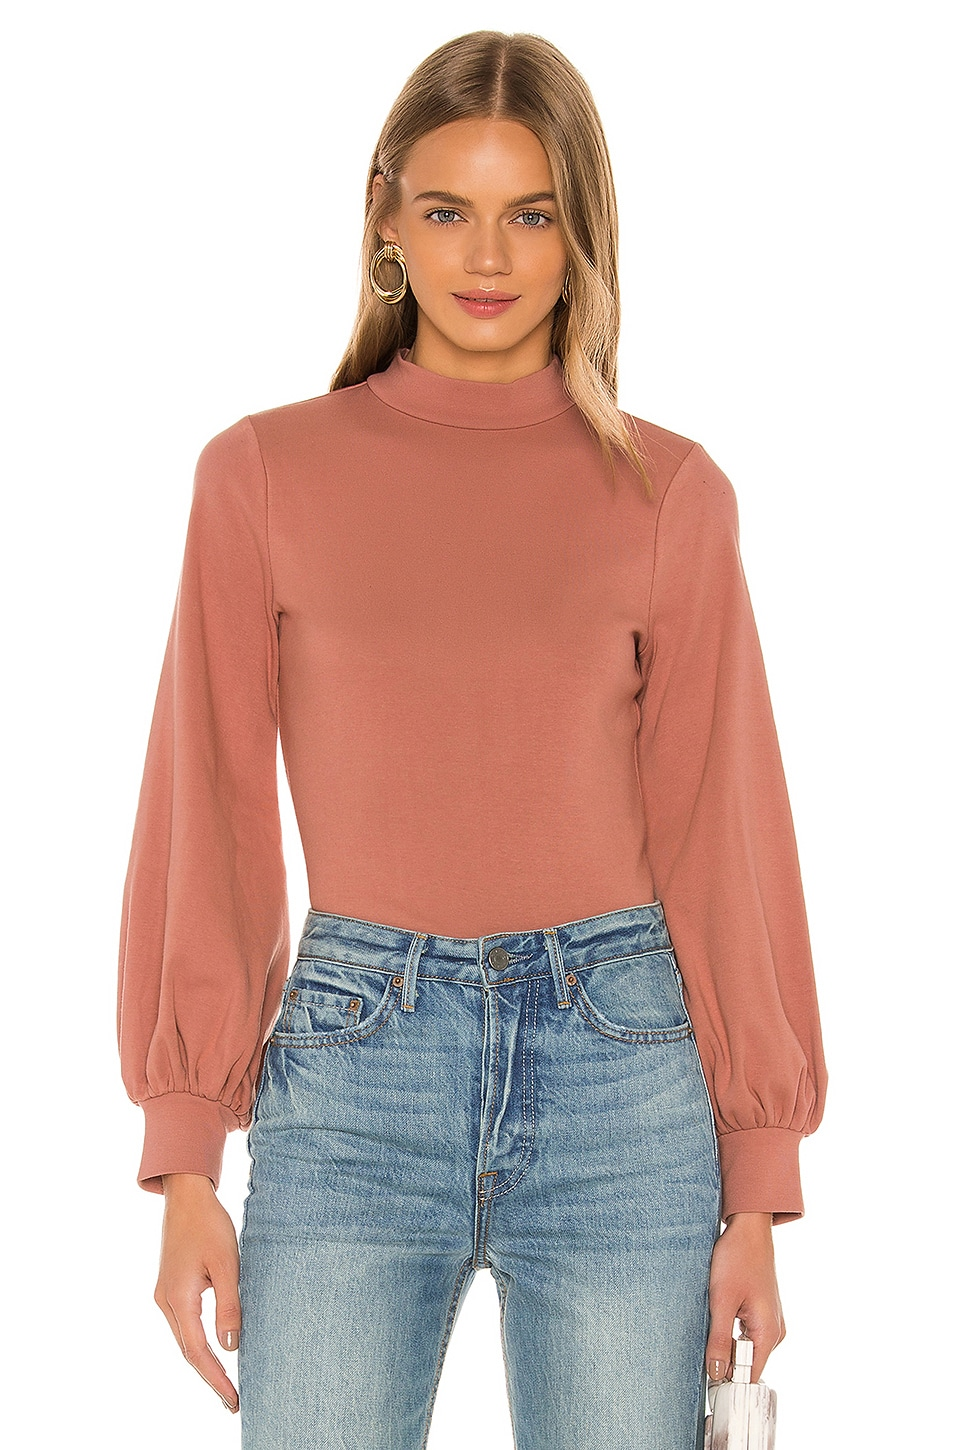 Privacy Please Emersyn Sweater in Mauve